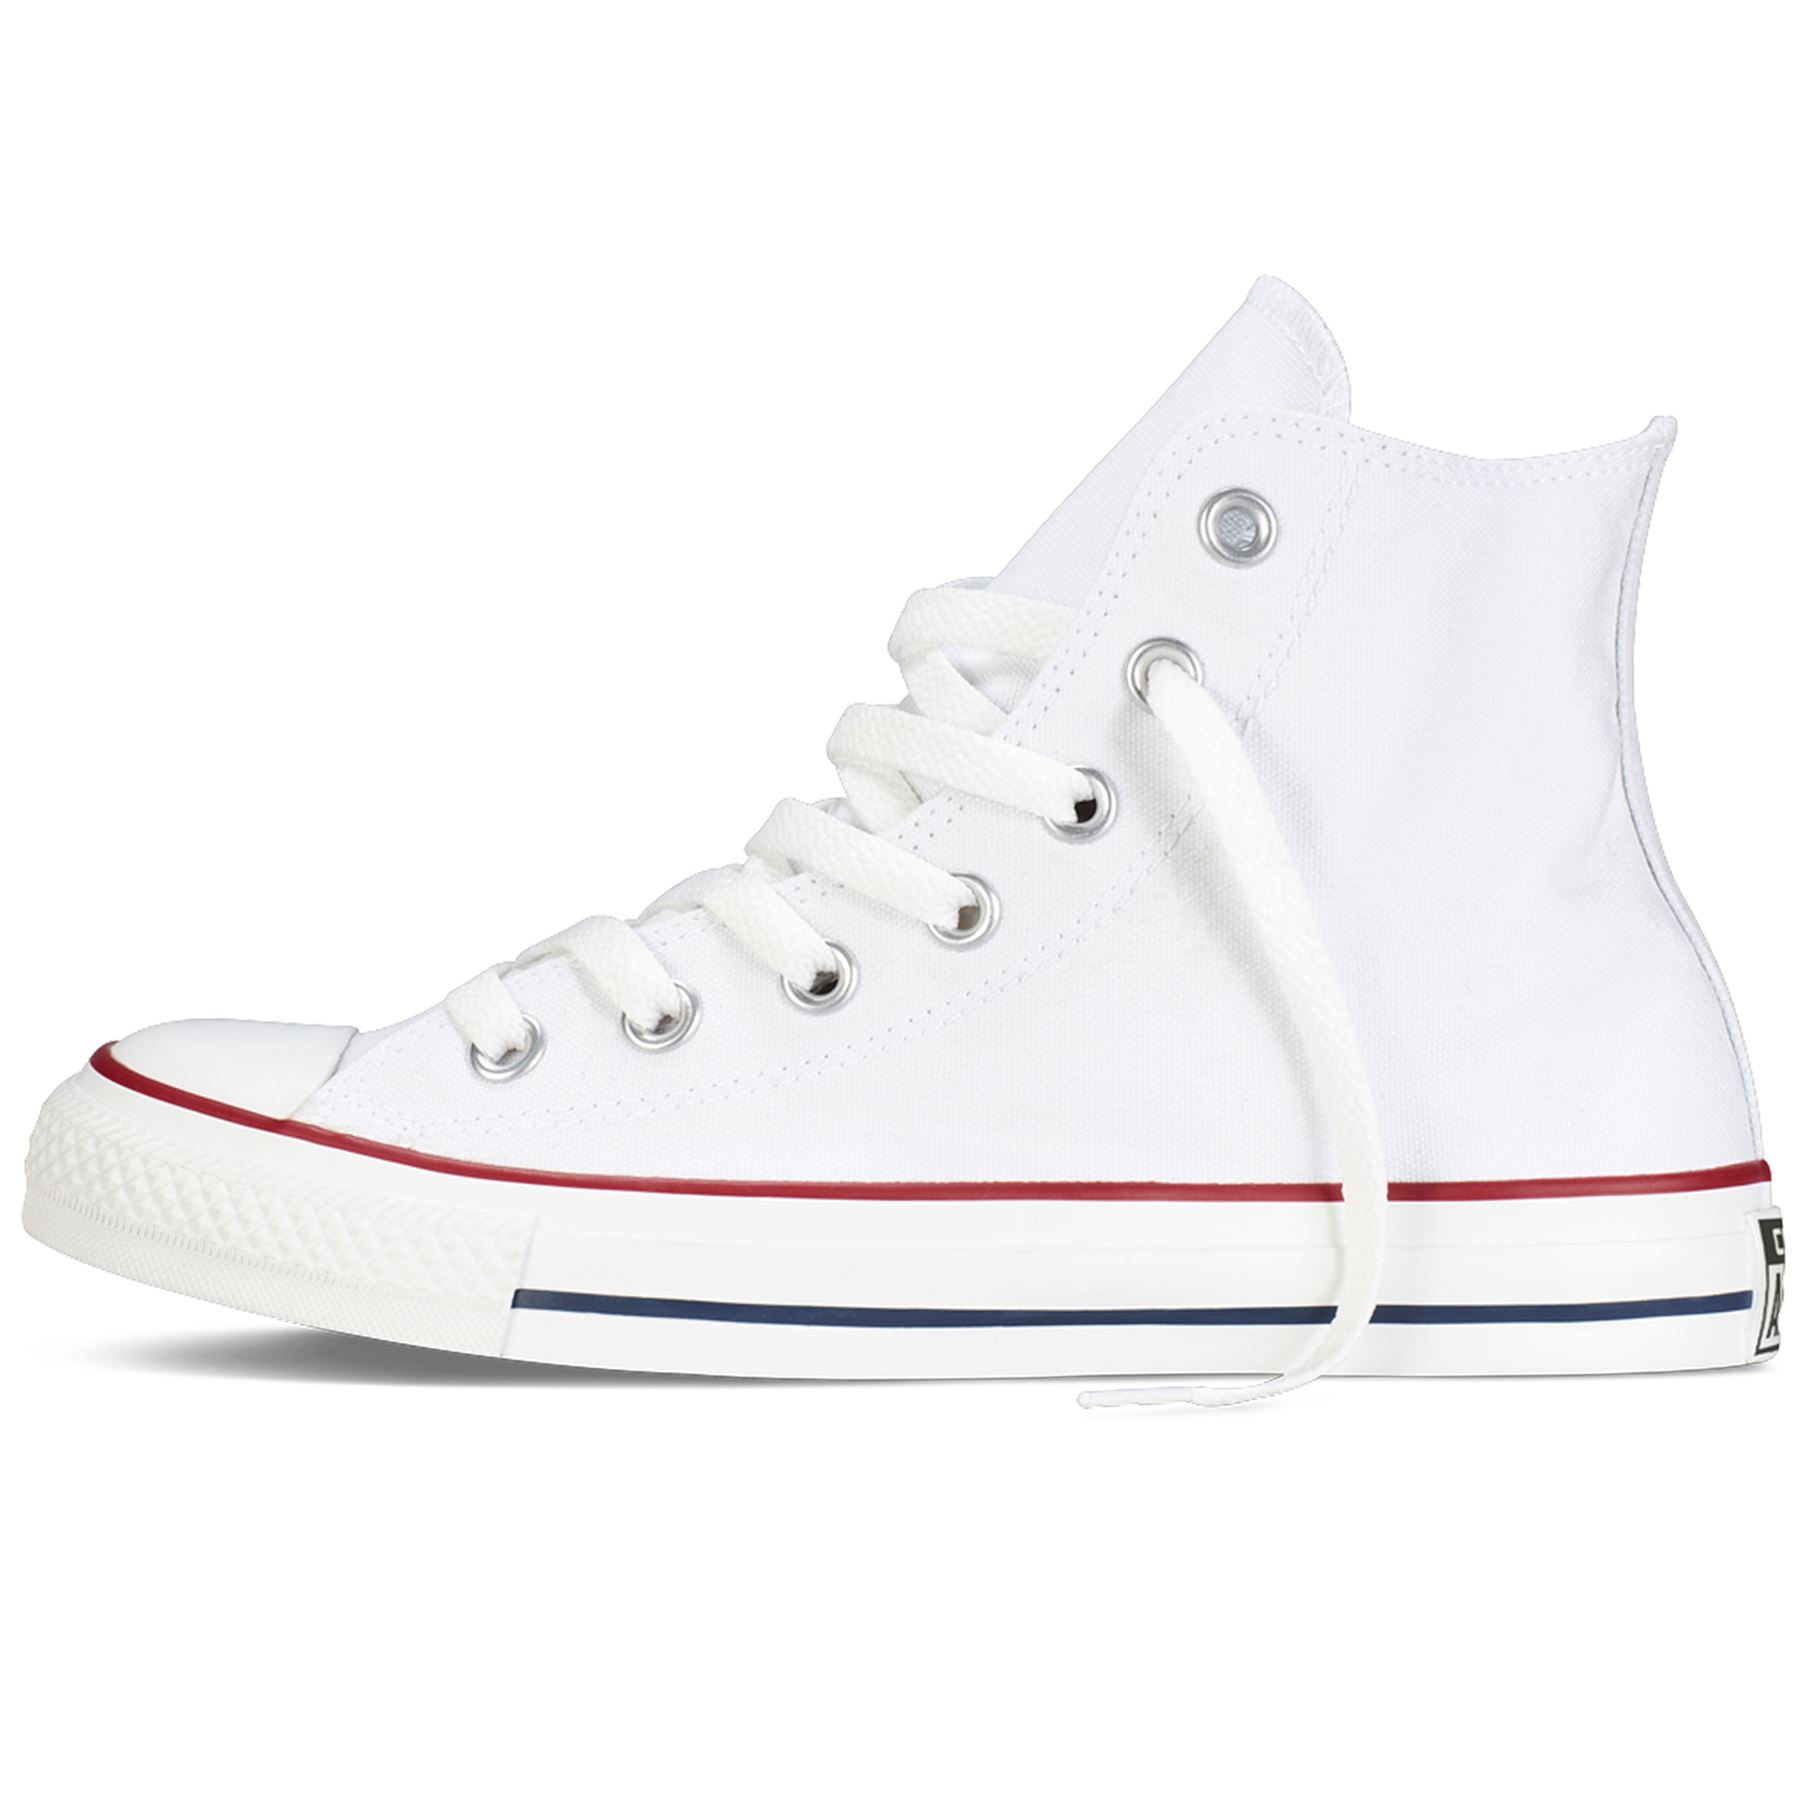 Converse-All-Star-Unisex-Mens-Womens-High-Hi-Tops-Trainers-Chuck-Taylor-Pumps thumbnail 28